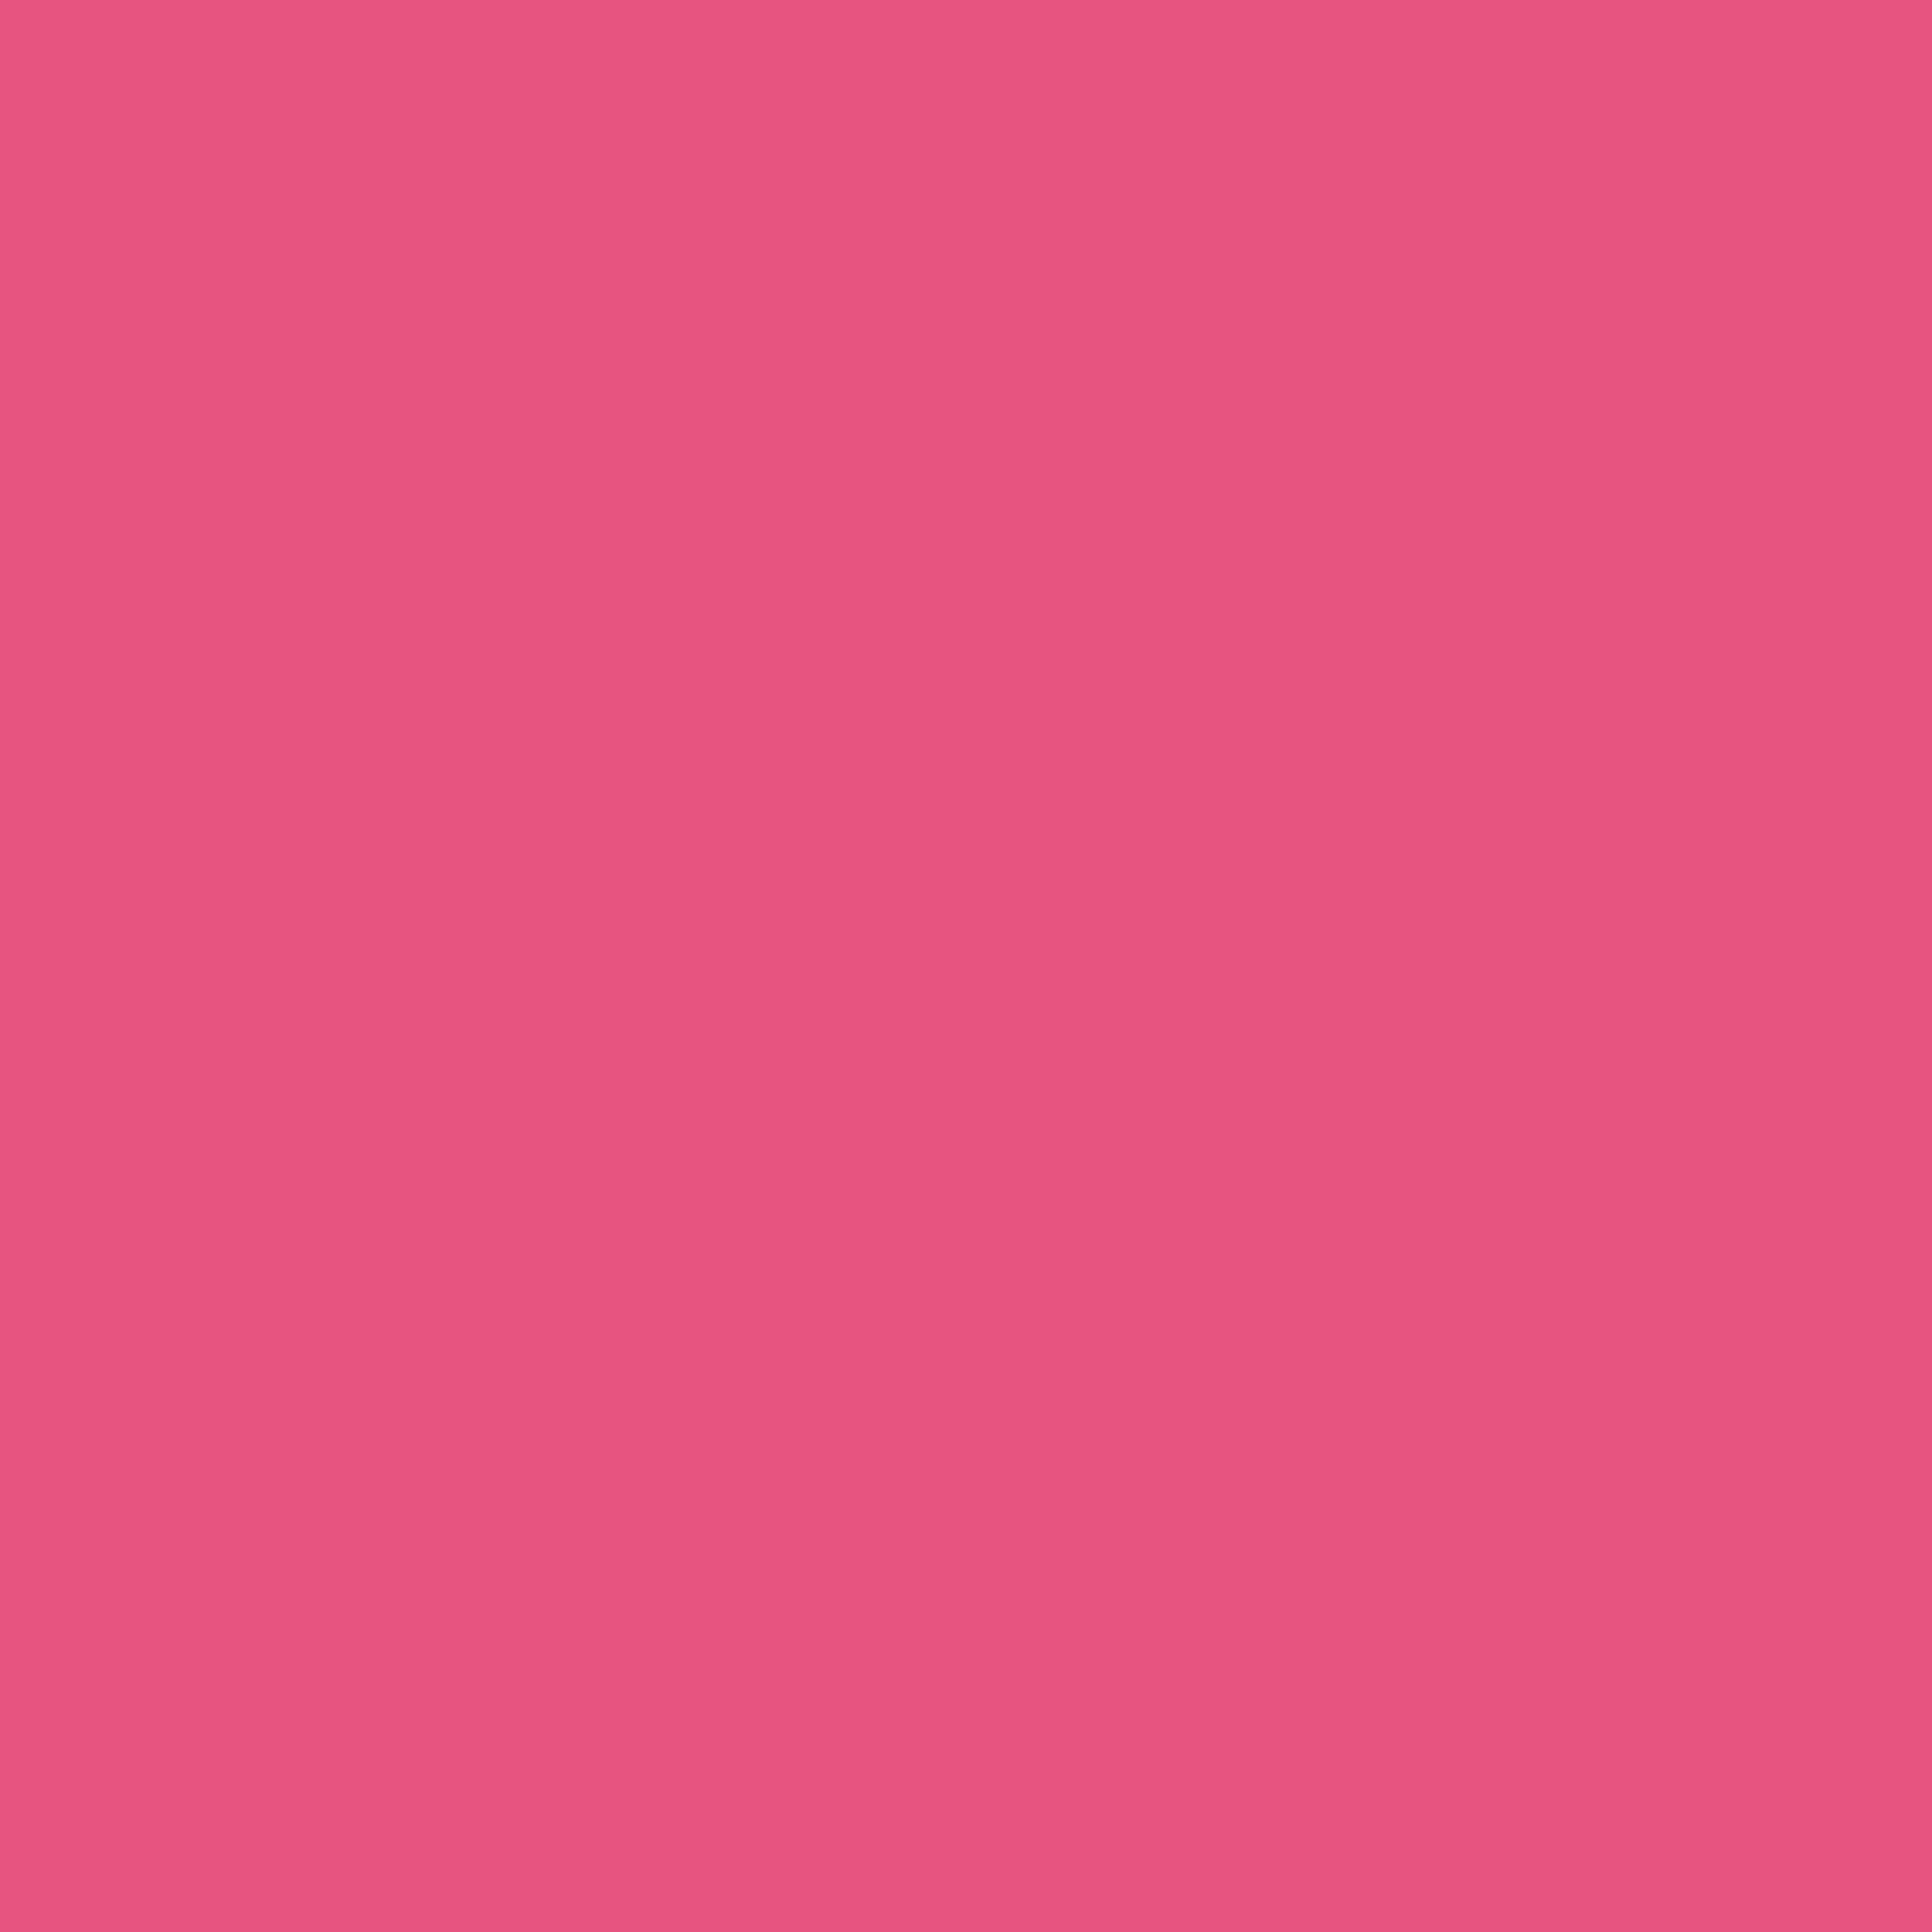 2732x2732 Dark Pink Solid Color Background